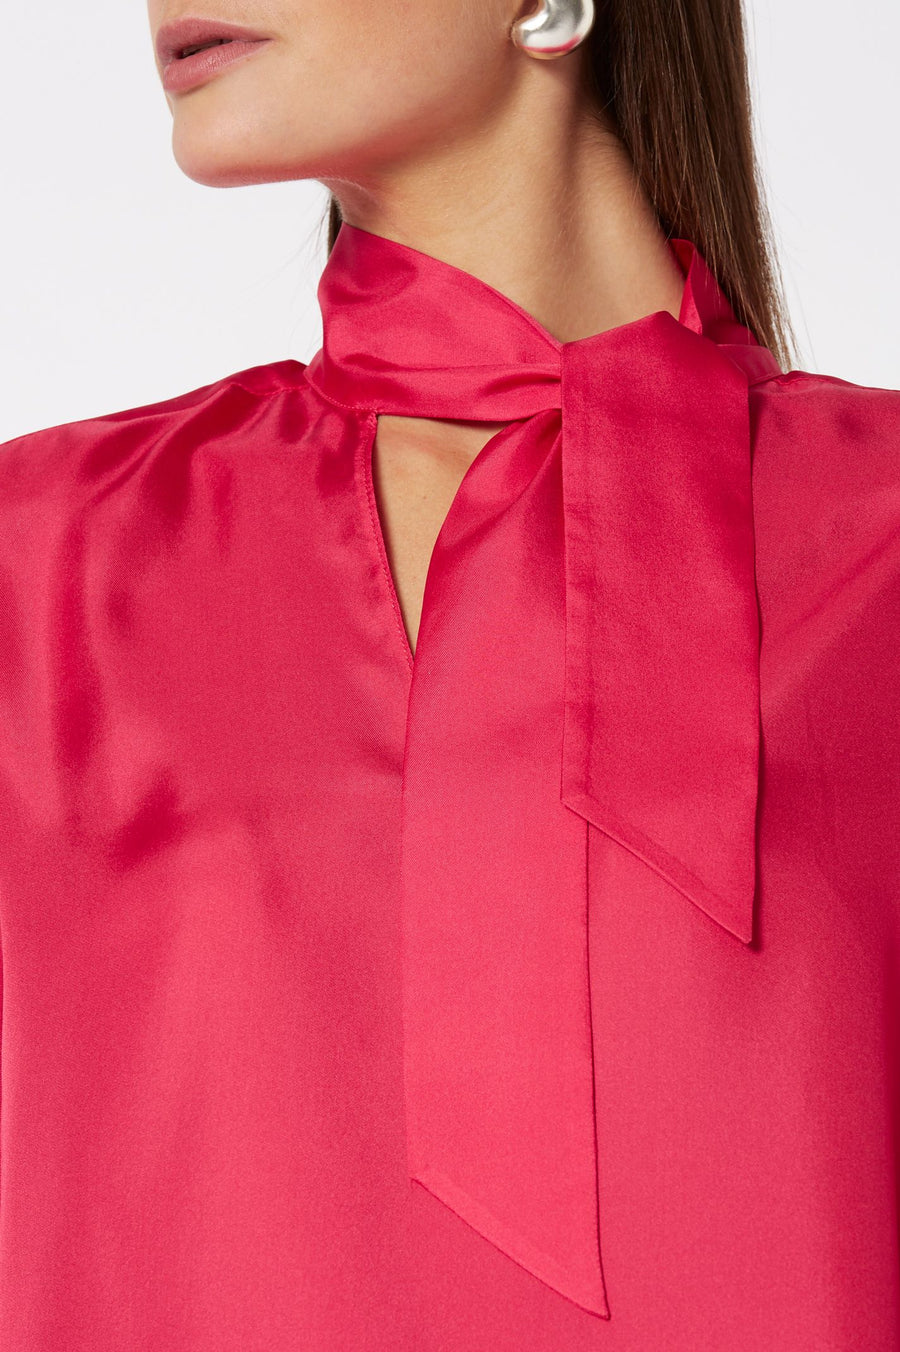 Silk TIe Neck Blouse Rasberry, Loose Fit, Long Sleeves, Tie Neck Cravat